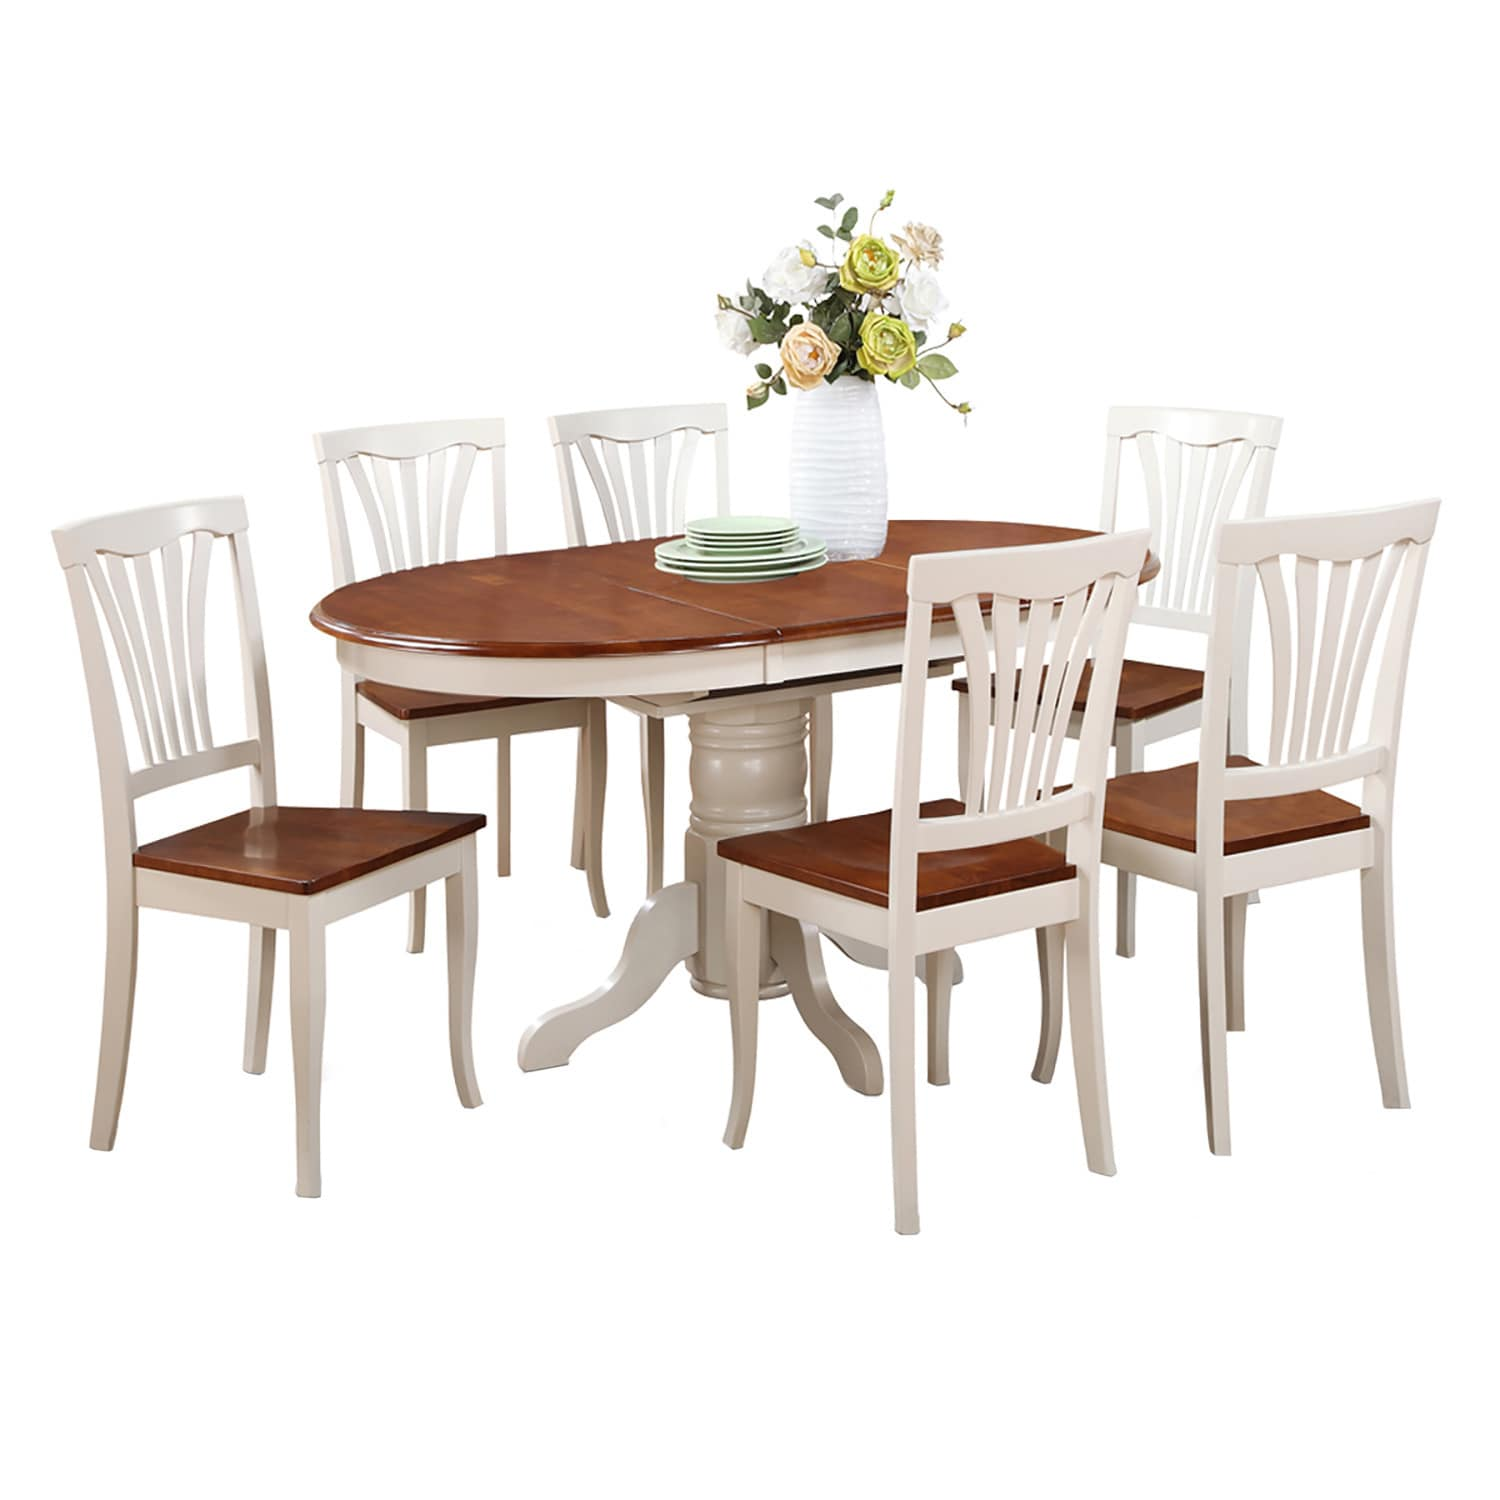 7-piece Oval Dining Room Table with Leaf and Dining Chair...